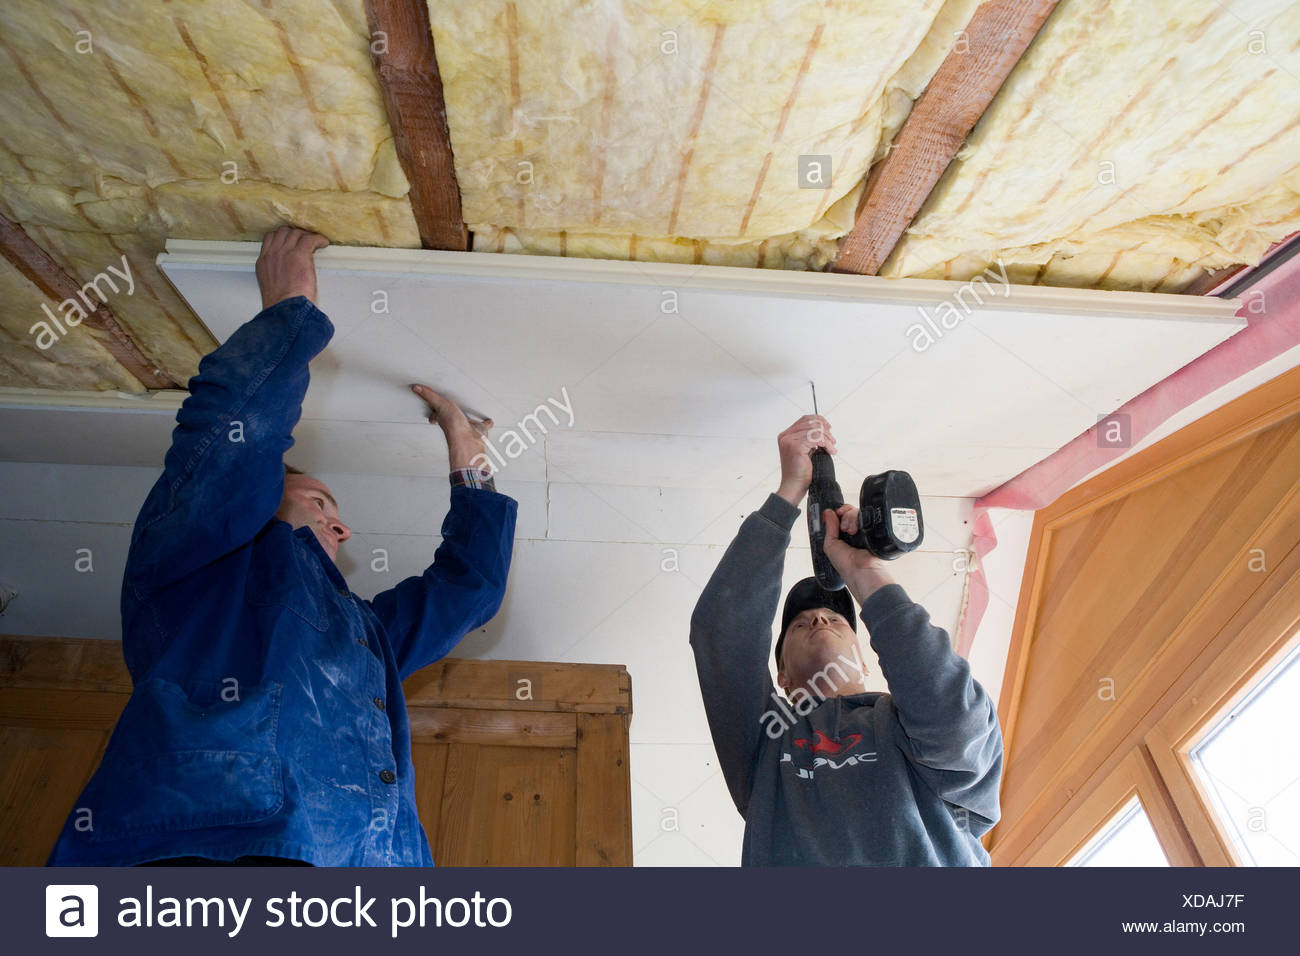 Interior Insulation Stockfotos & Interior Insulation Bilder - Alamy